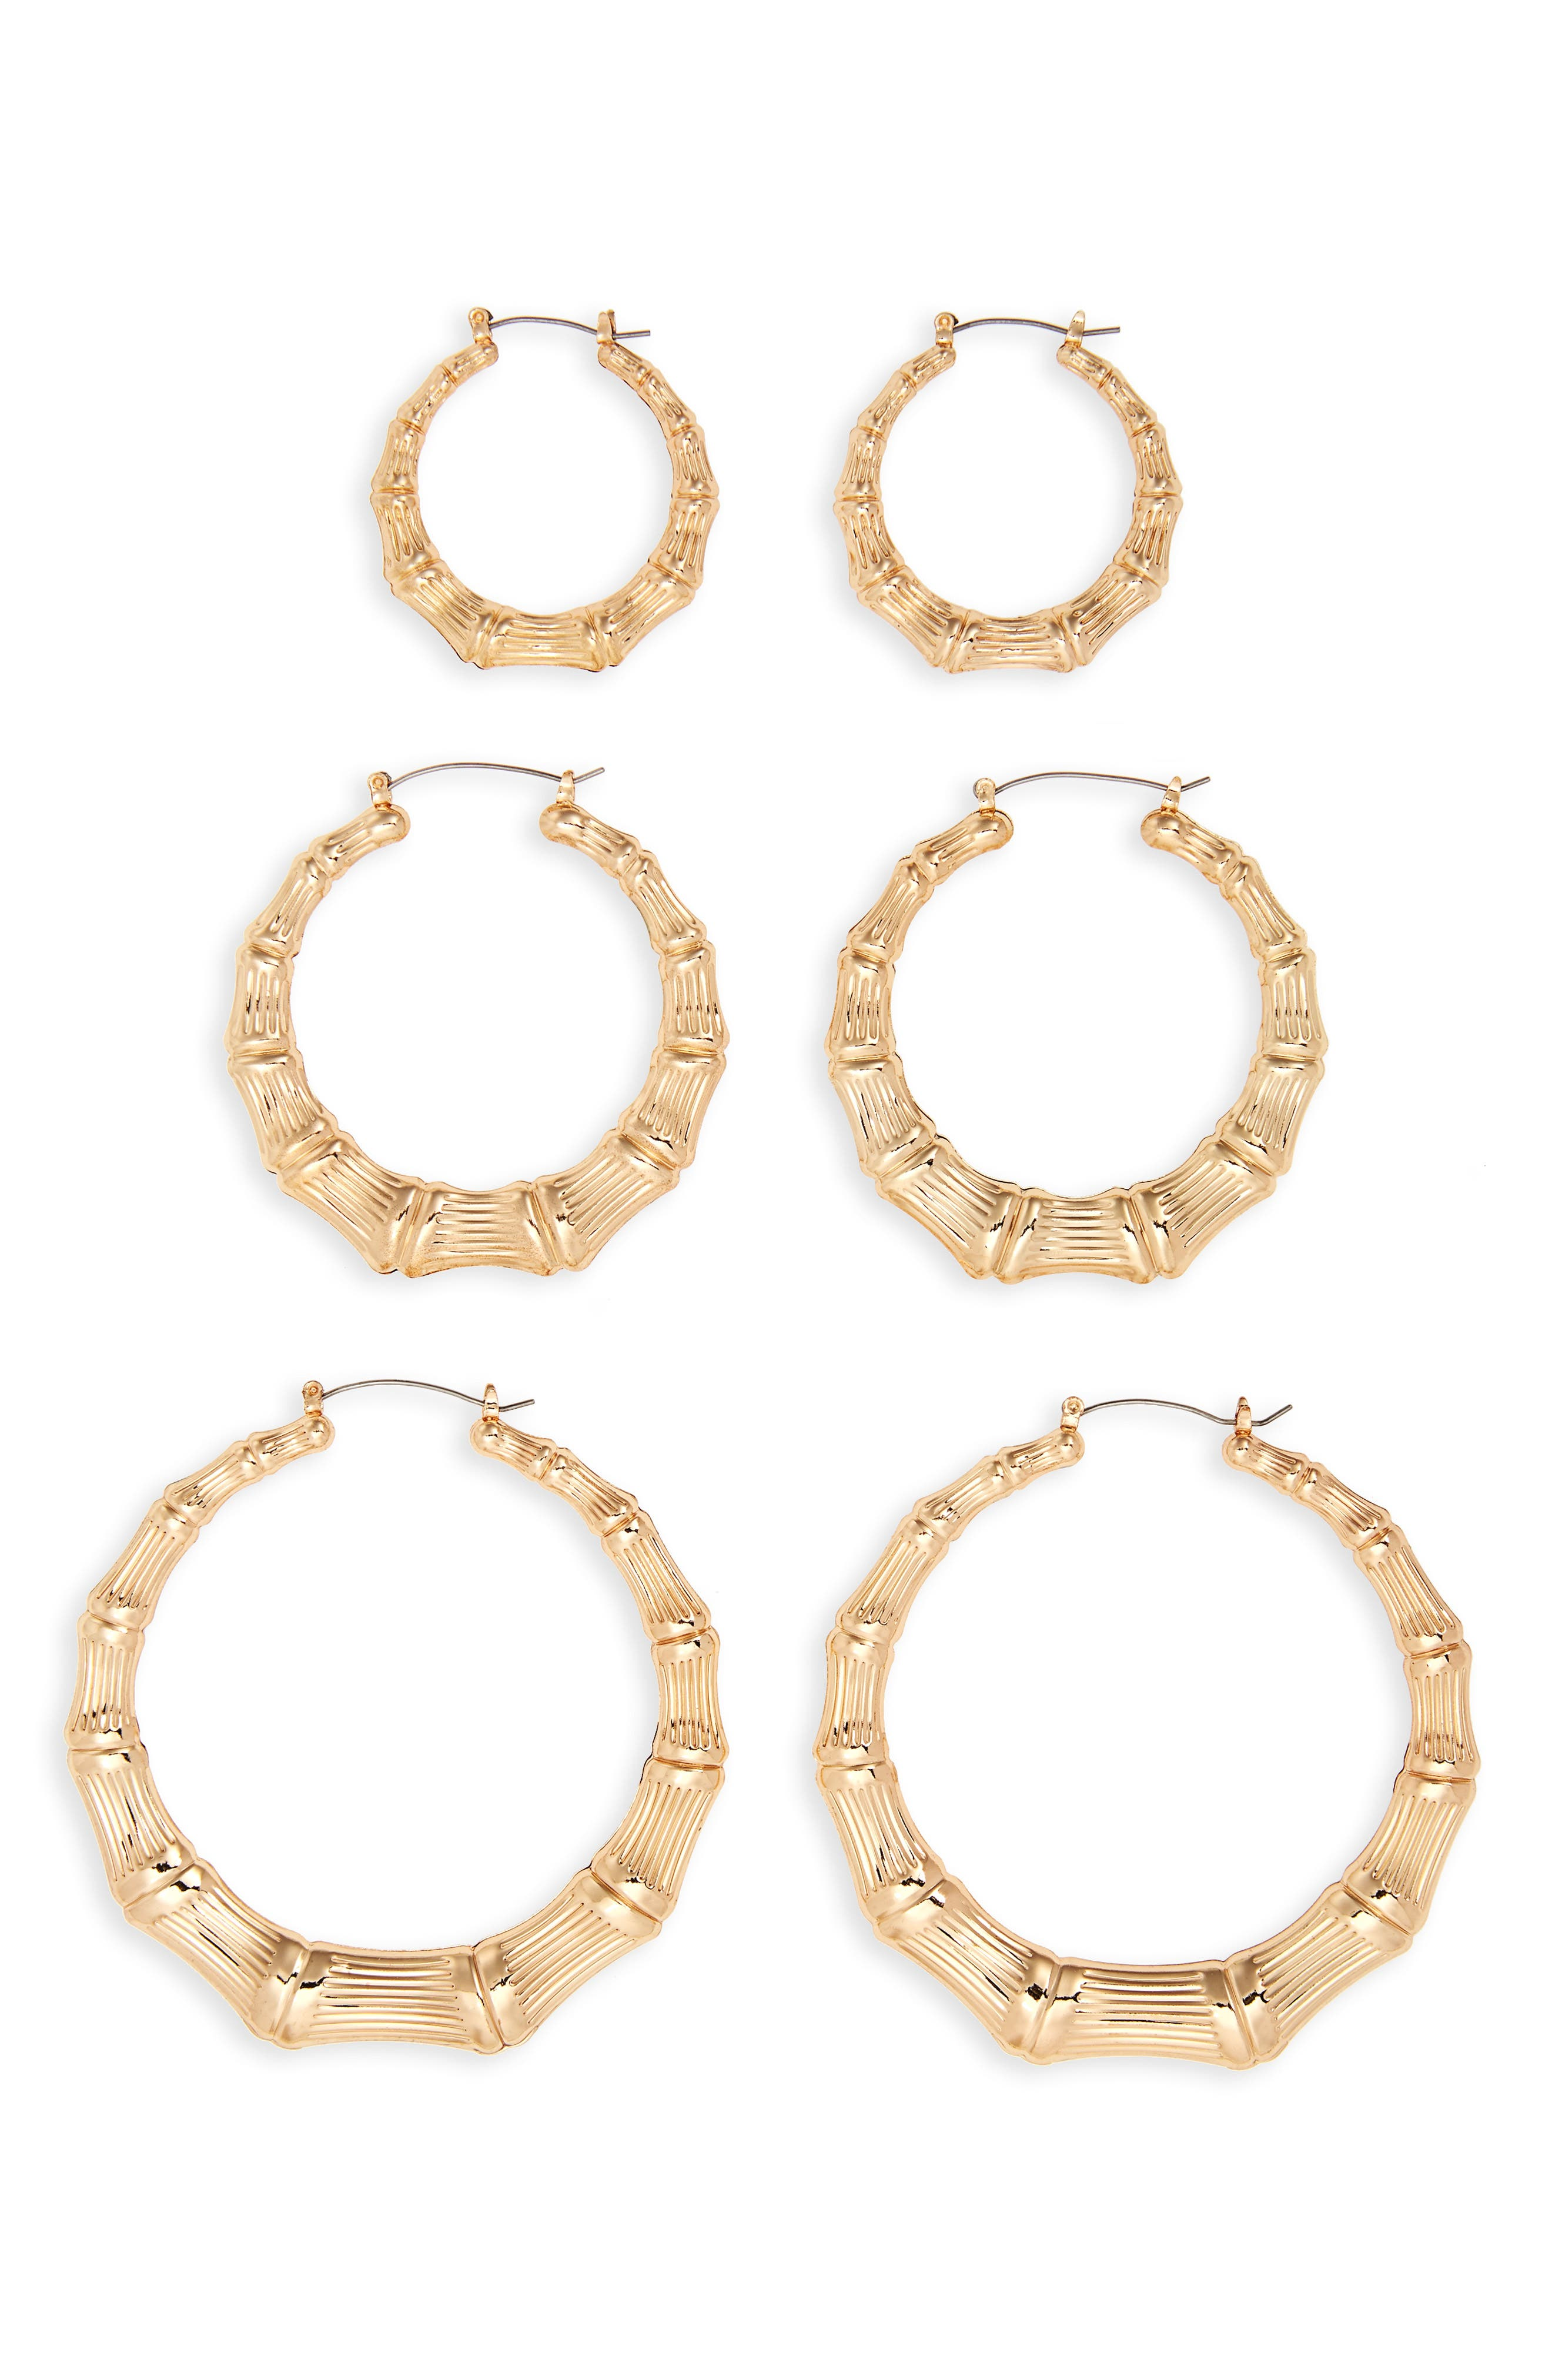 3-Pack Bamboo Hoop Earrings,                             Main thumbnail 1, color,                             Gold